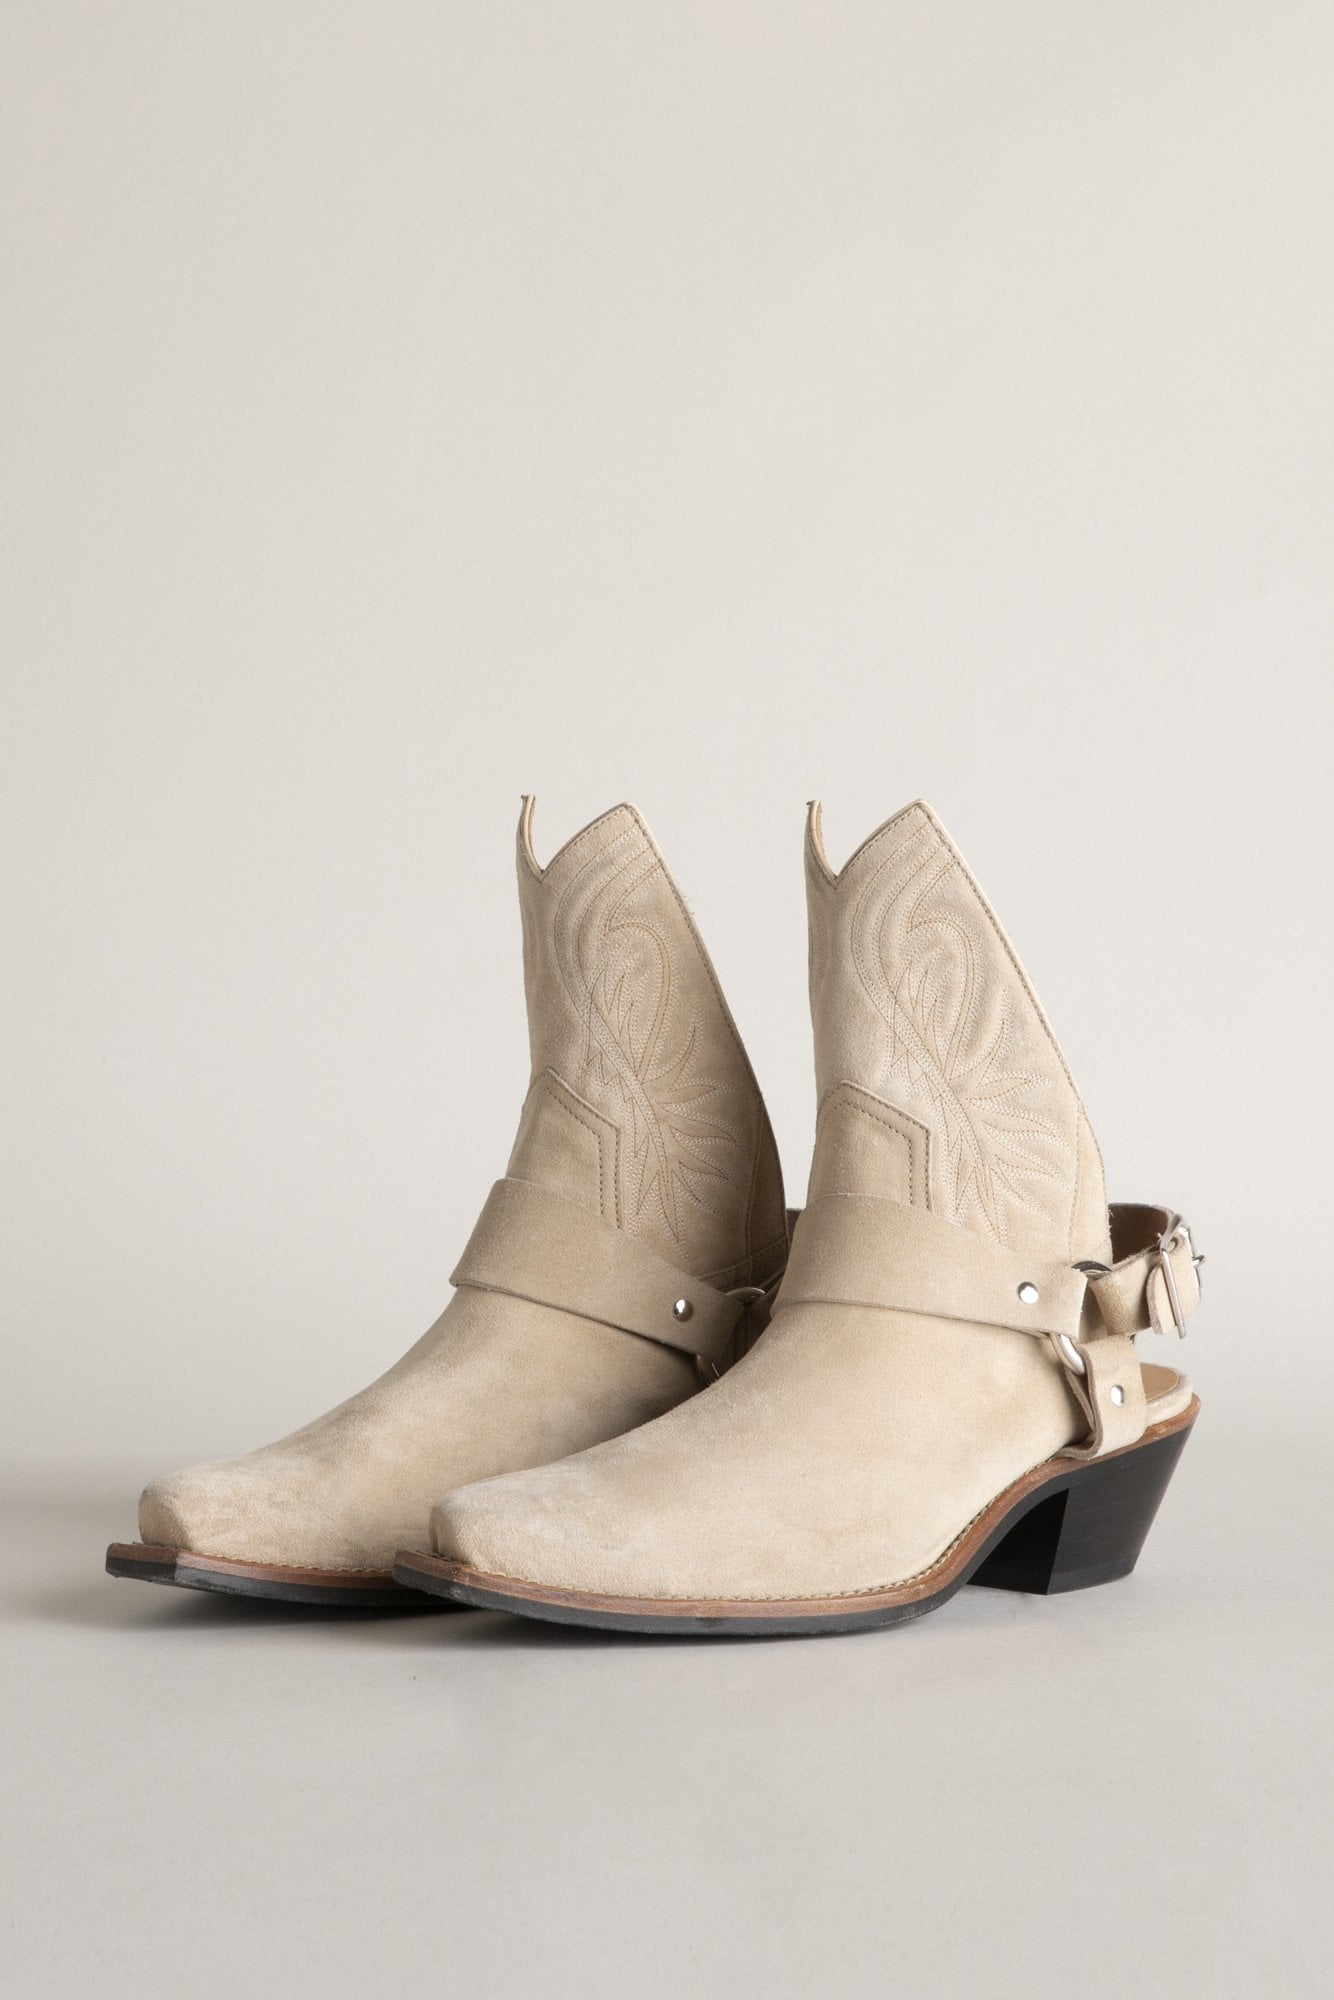 Half Cowboy Boots with Harness - Tan Suede